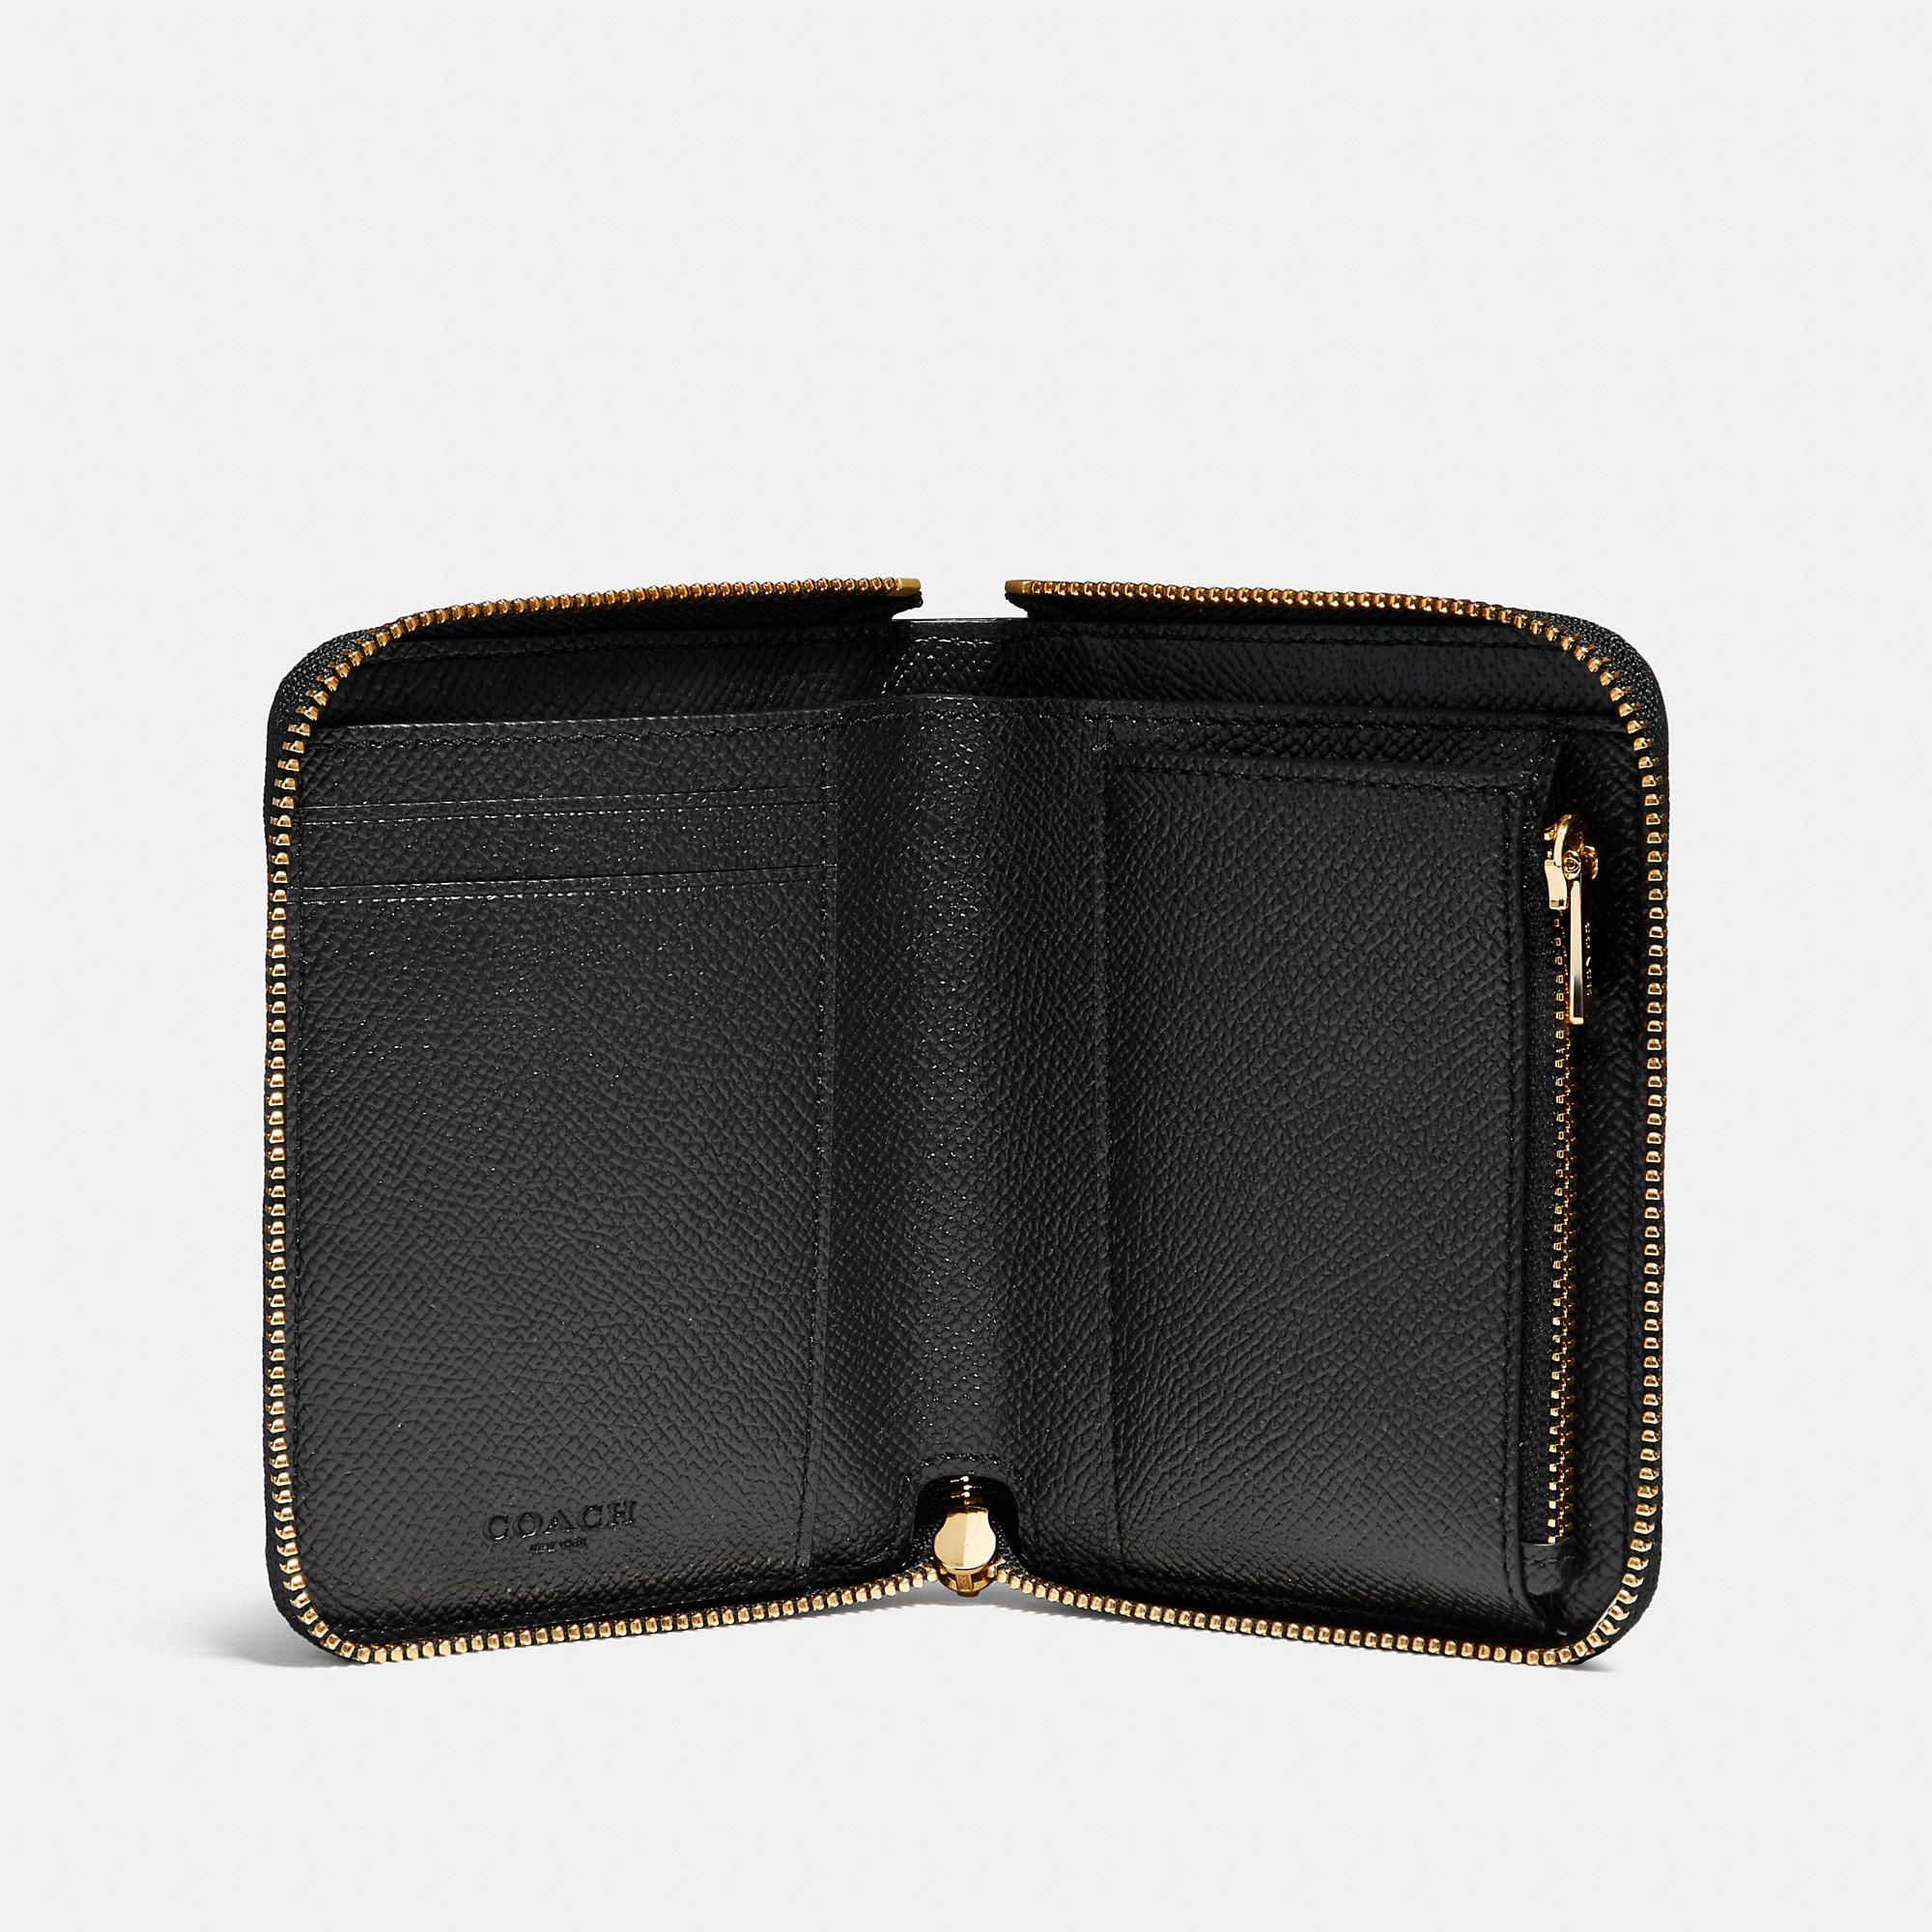 2d8a177e35 COACH Small Zip Around Wallet - Women's in 2019 | Products | Zip ...